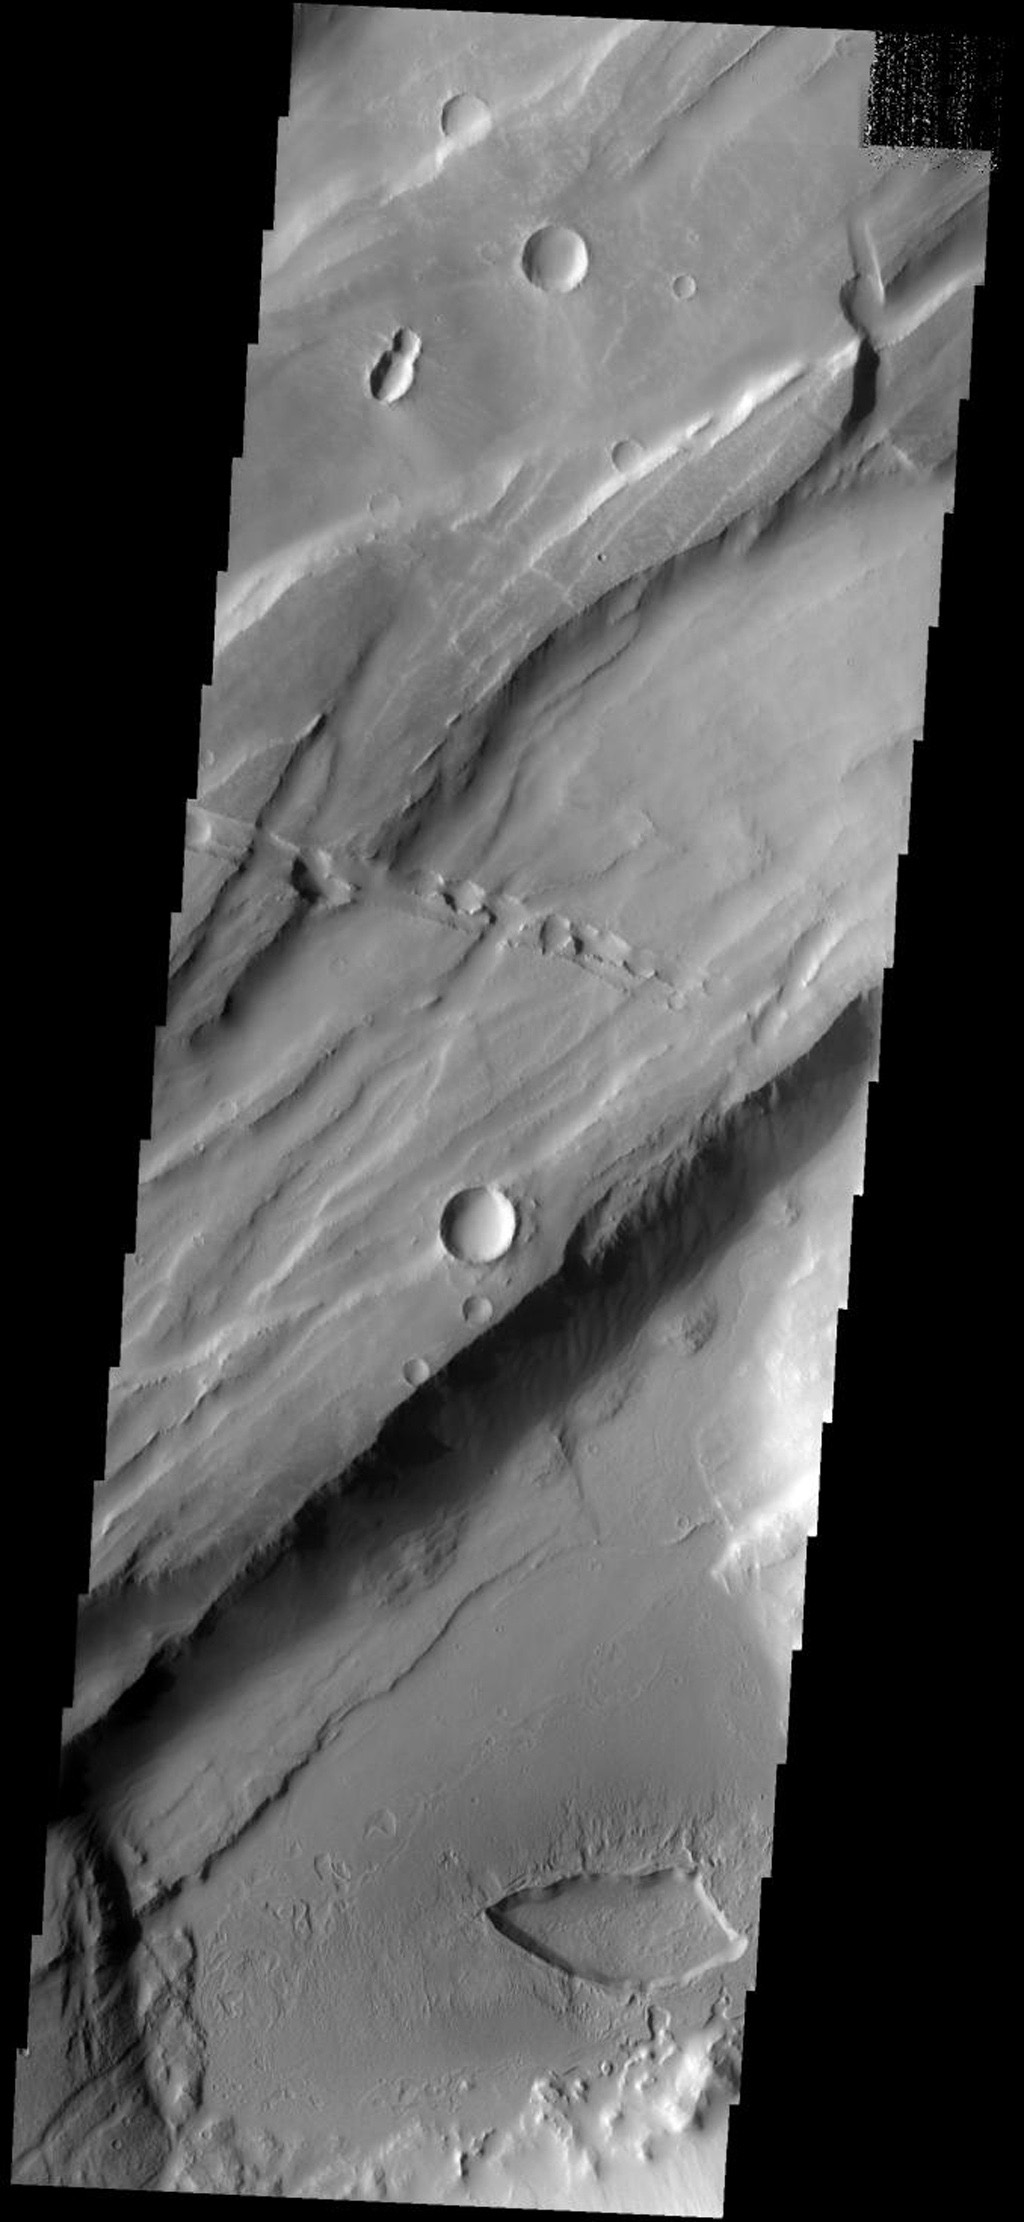 This image is from NASA's 2001 Mars Odyssey. THEMIS ART IMAGE #64 Give me a kiss, this depression looks like lips and what appears to be a bug in the upper left.